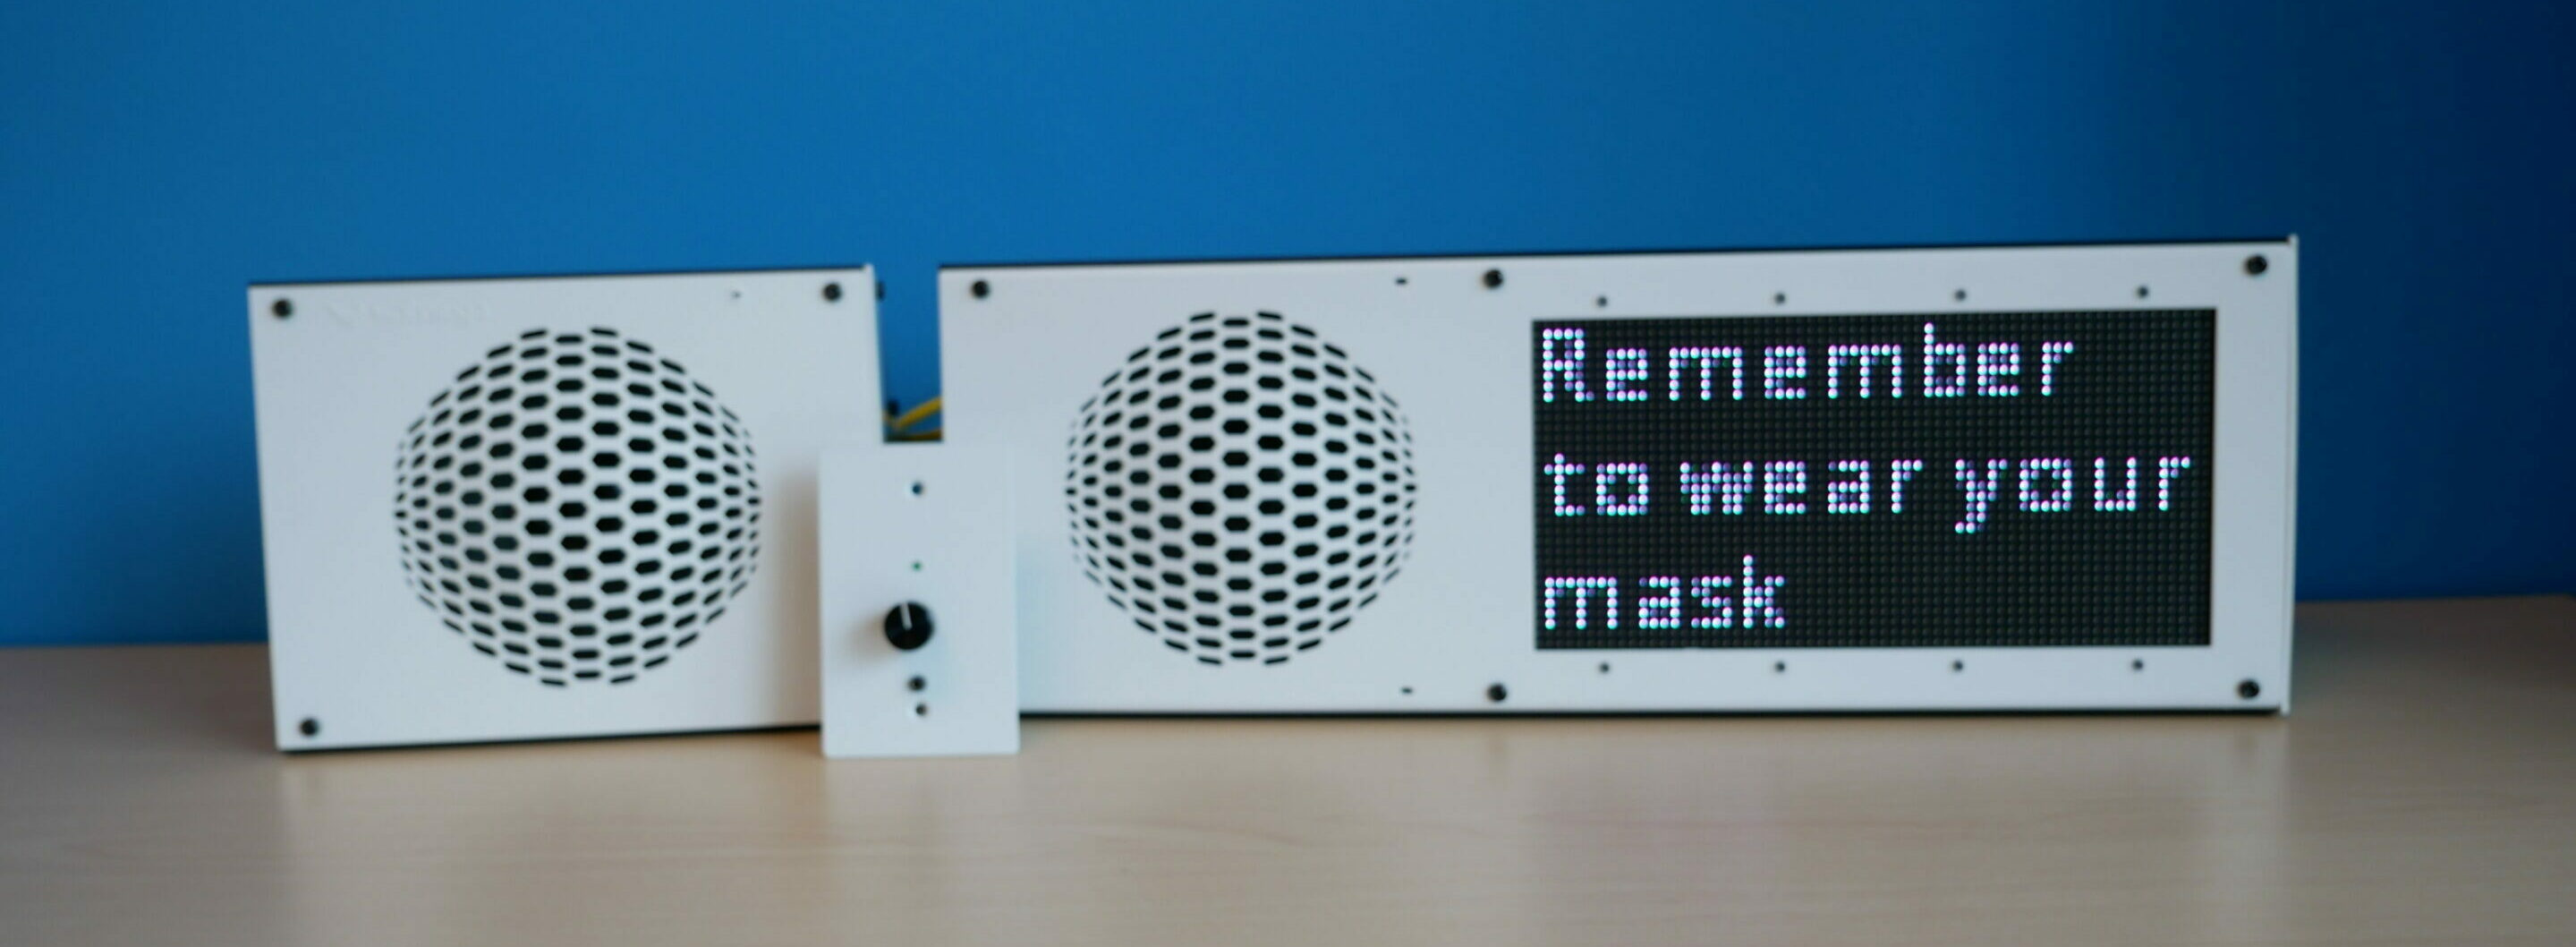 Sound Reinforcement Panel and IP Displays for COVID Response